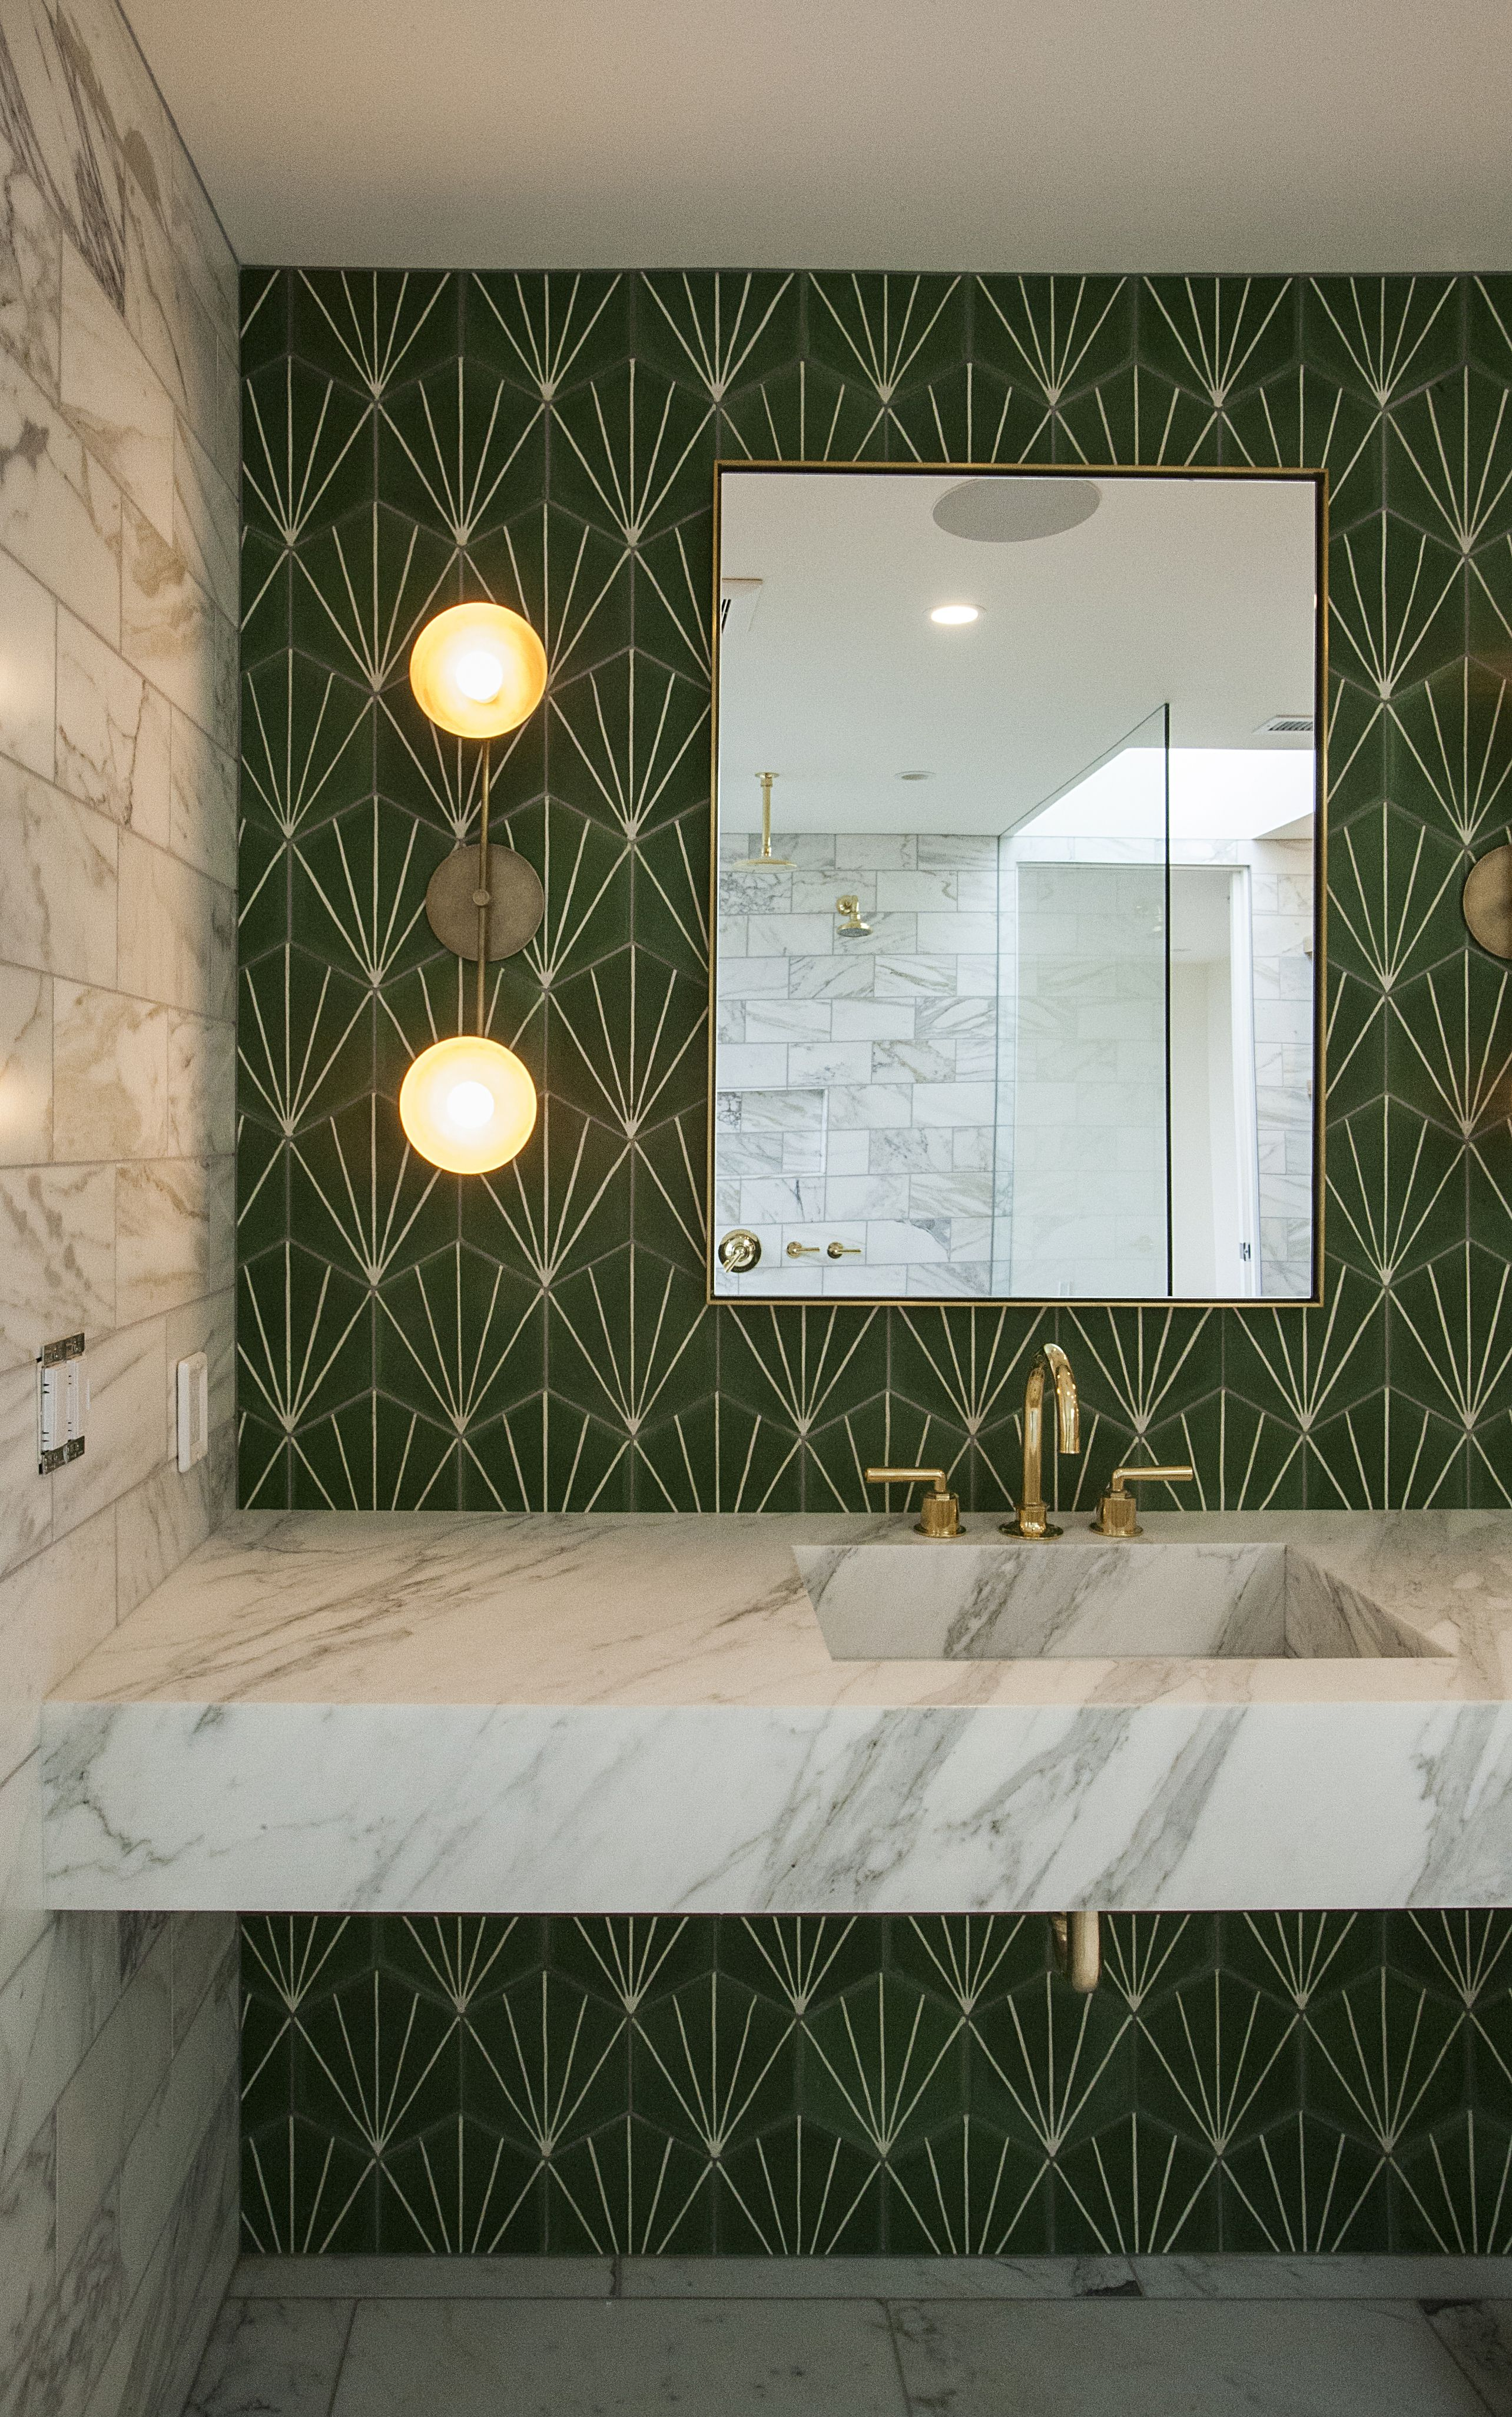 Beautiful Vanity Wall With Cement Tile From Marrakech Design Love